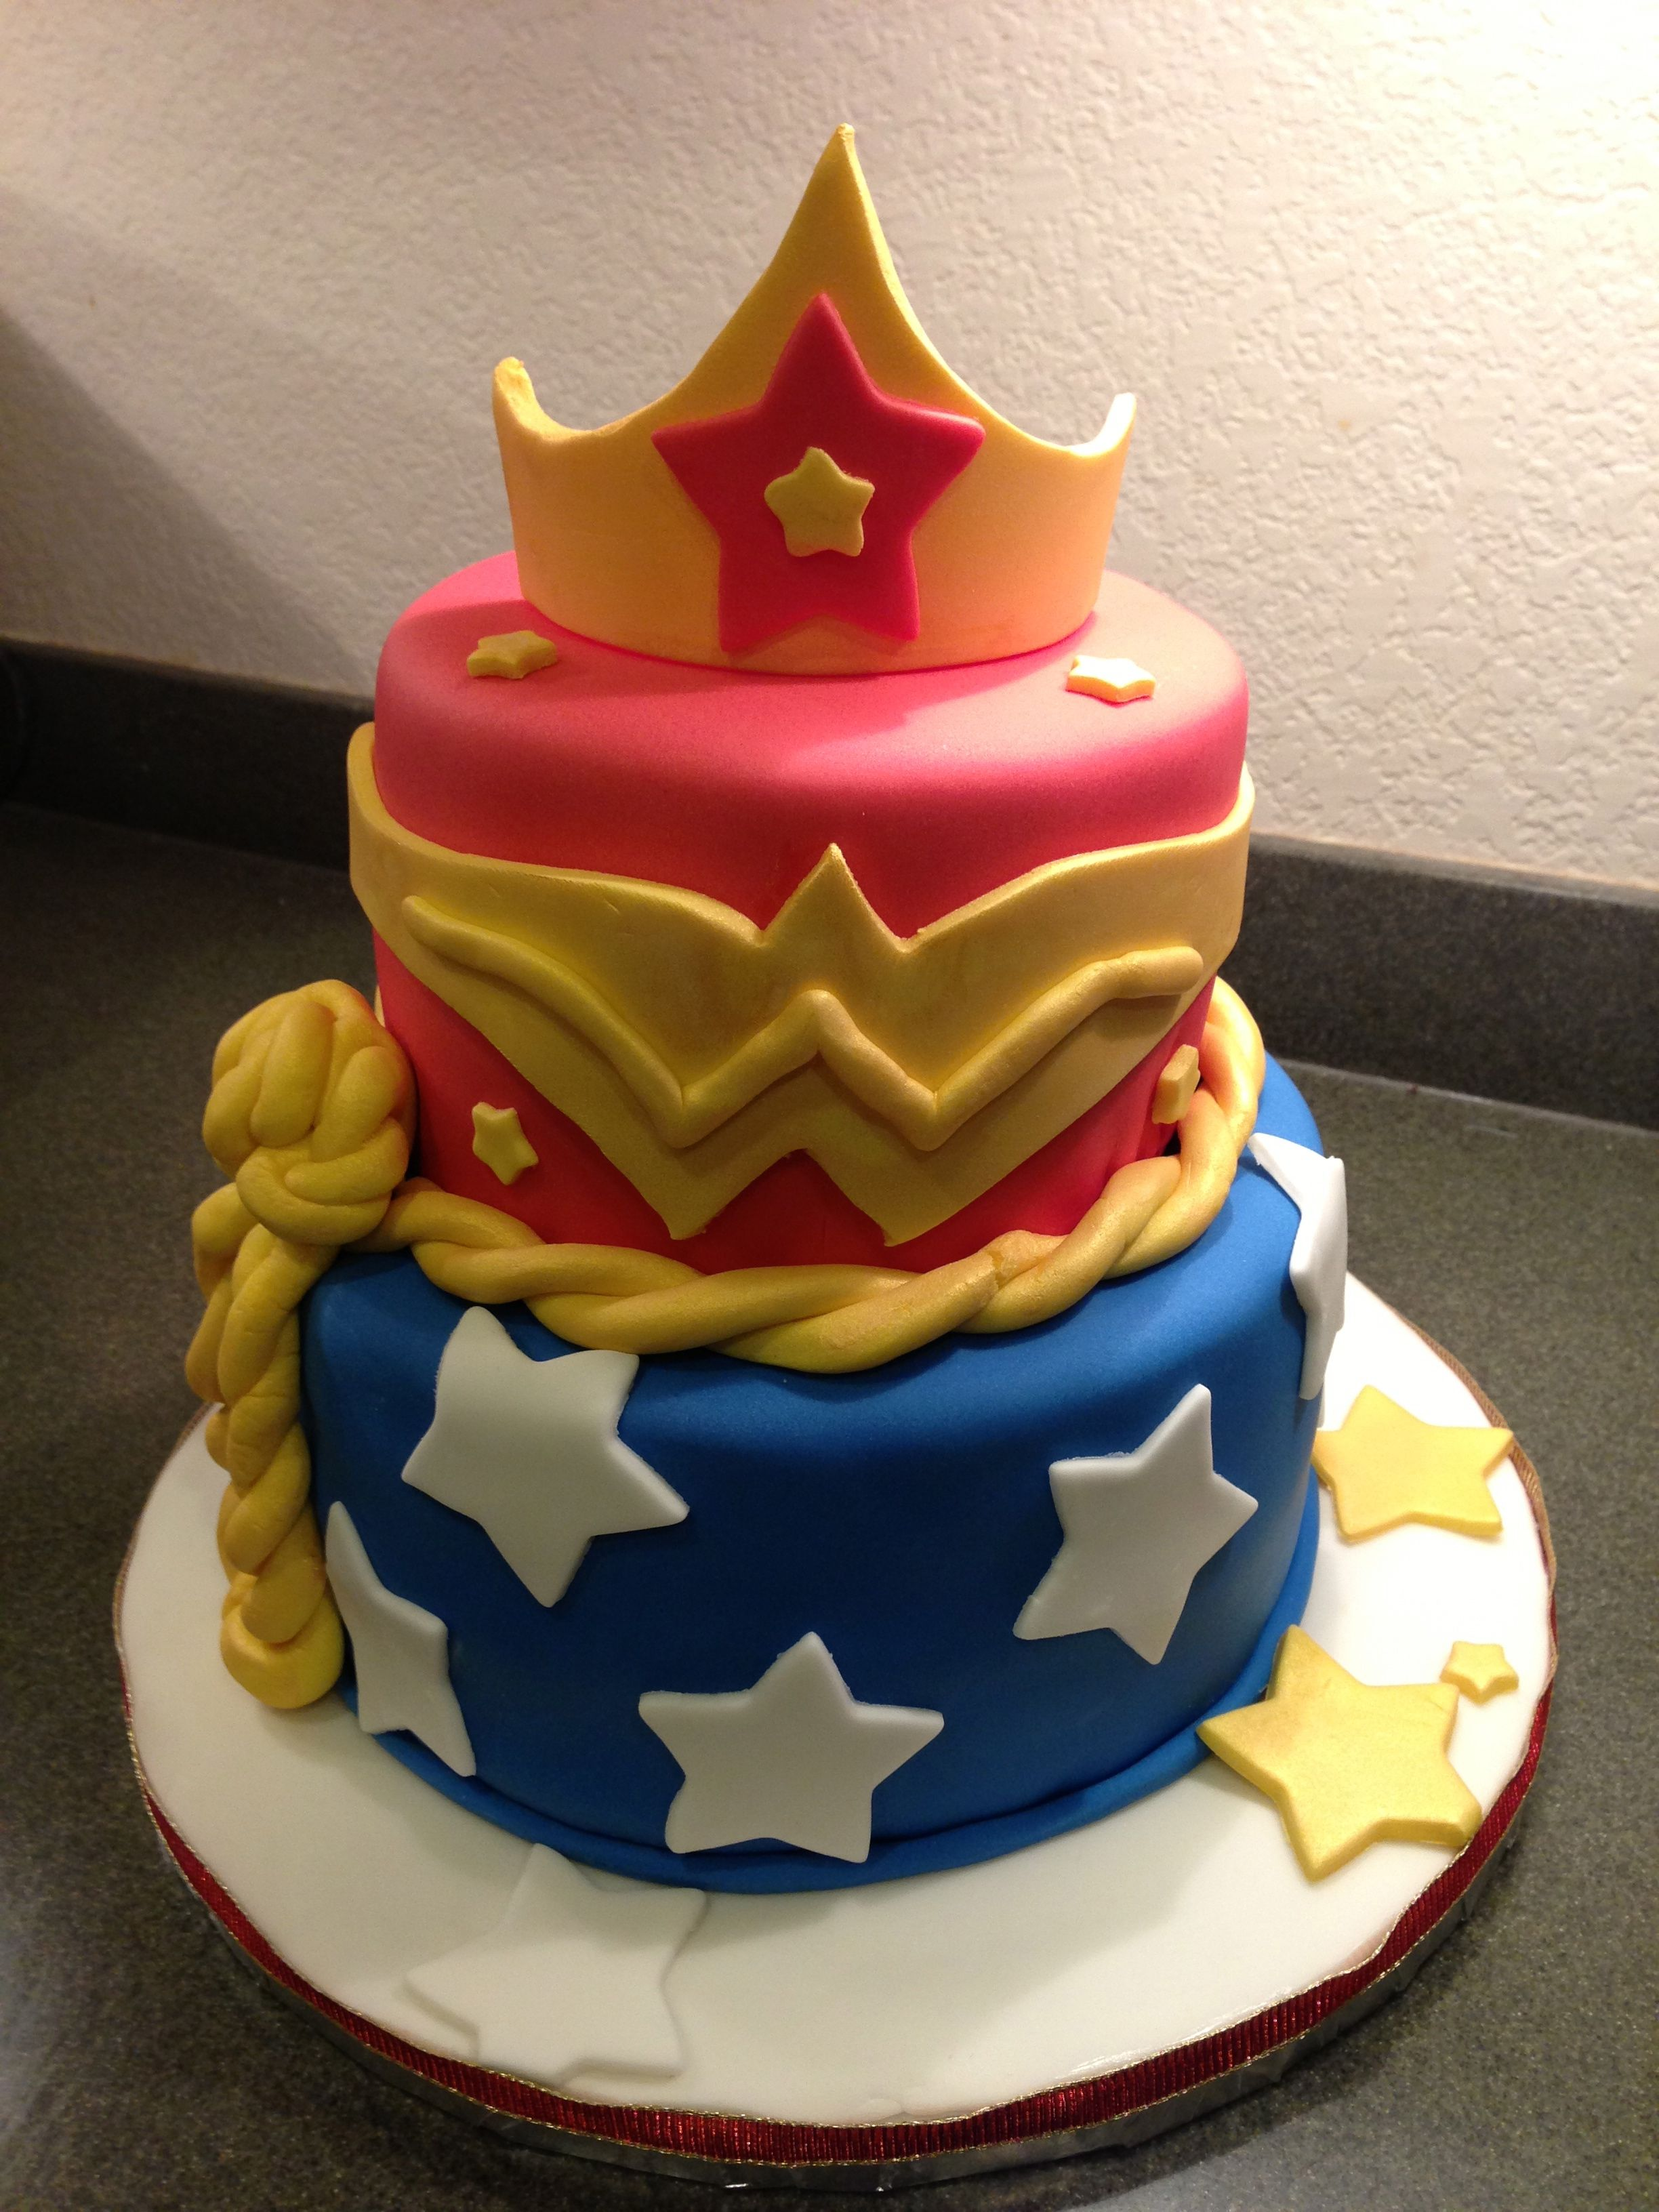 Wonder woman cake i want this for my birthday